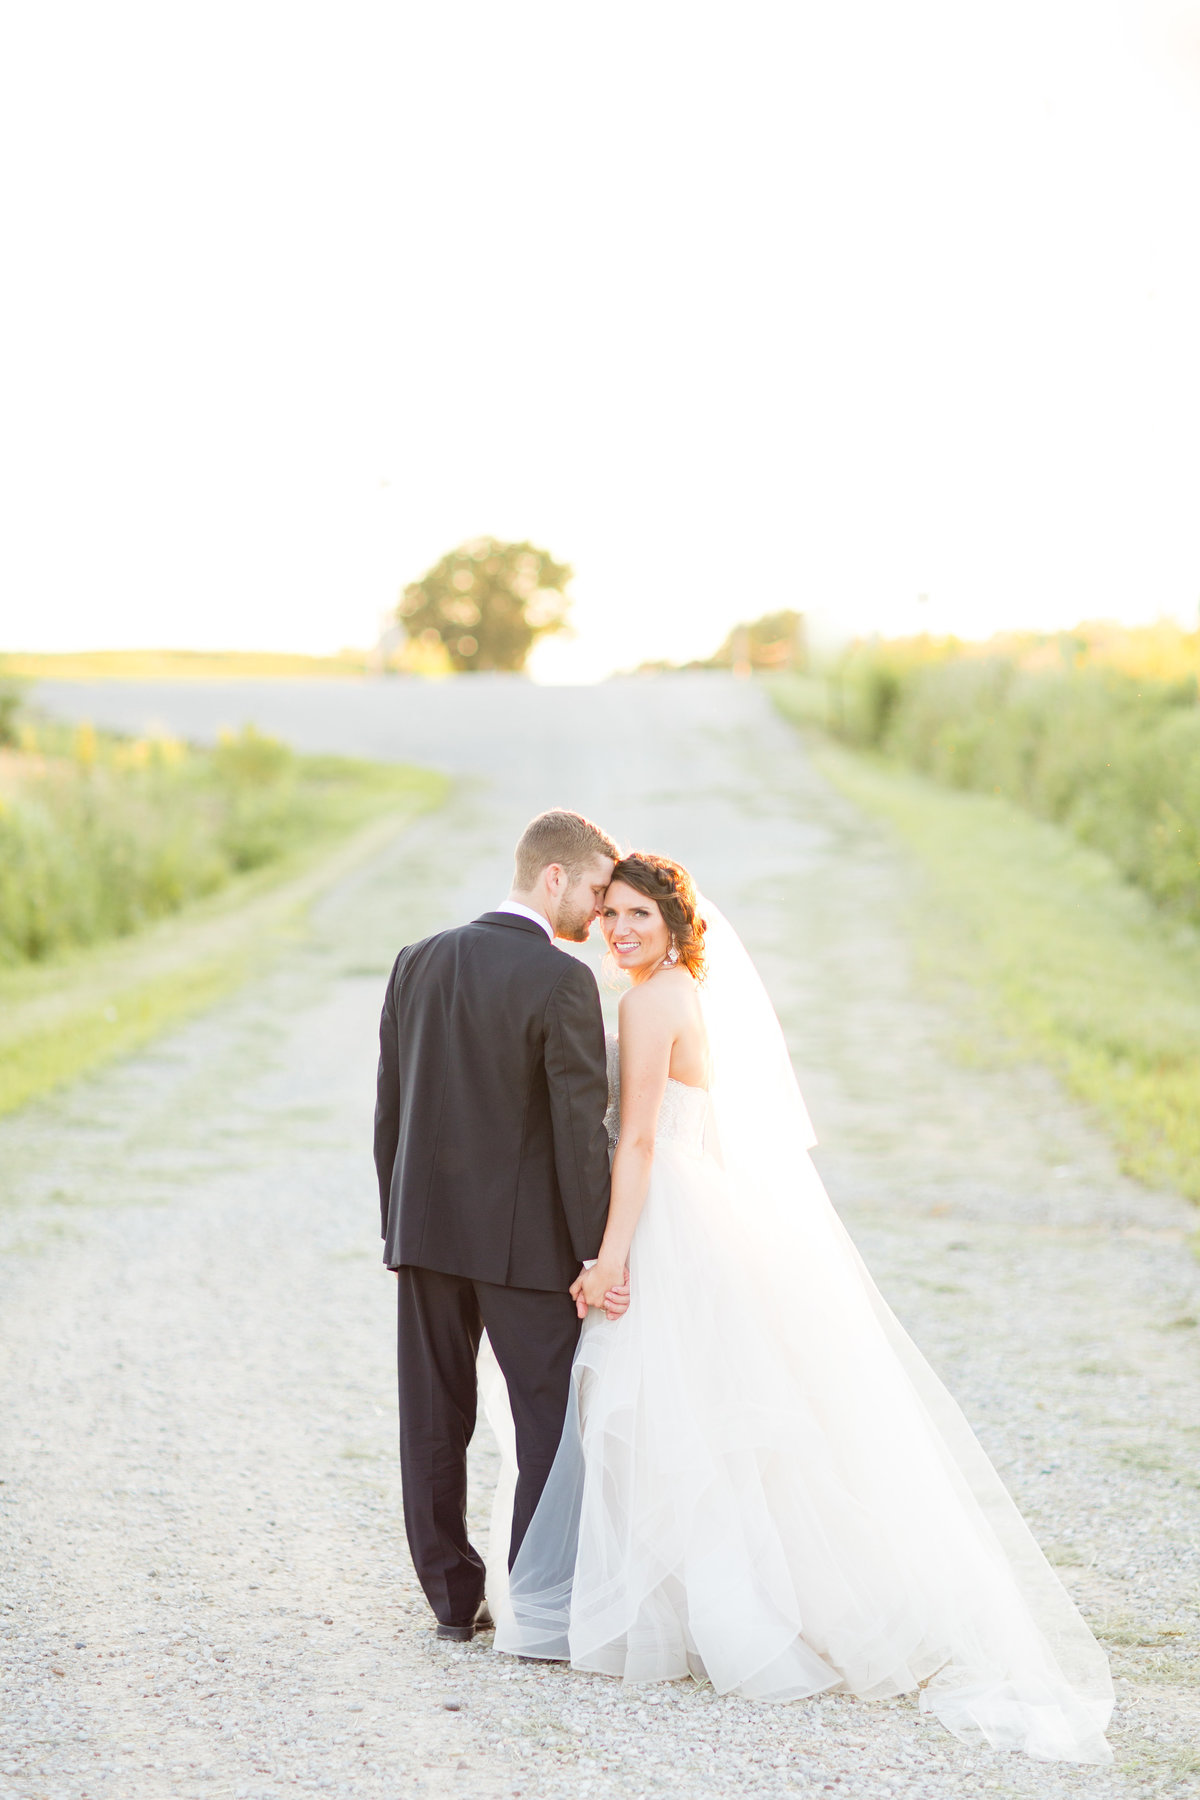 Megan and Connor | Blog-177